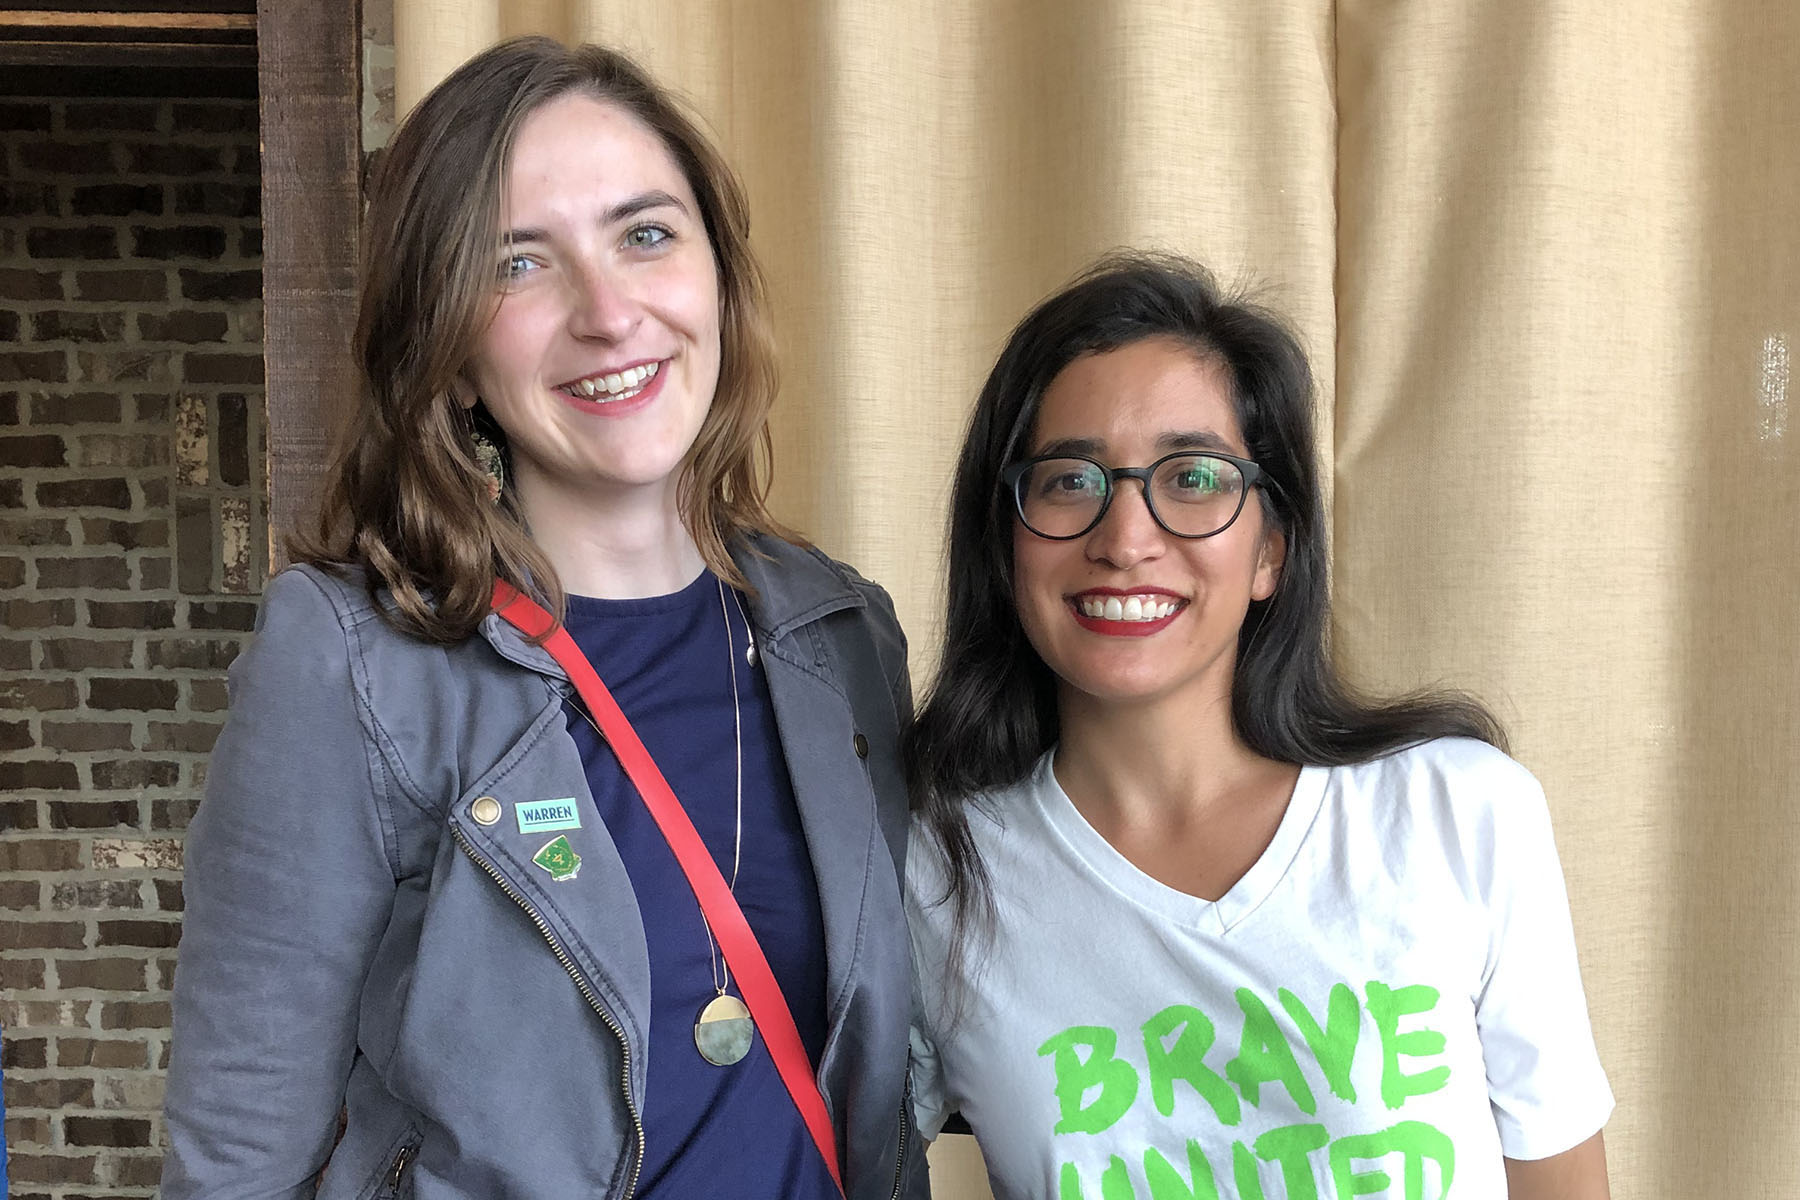 Molly Doris-Pierce '15 and Morgan Hopkins '10 met up in Houston, TX for an All* Above All Action Fund Panel, featuring reproductive rights justice leaders. Molly is the Women's Outreach Director for the Warren 2020 Campaign.